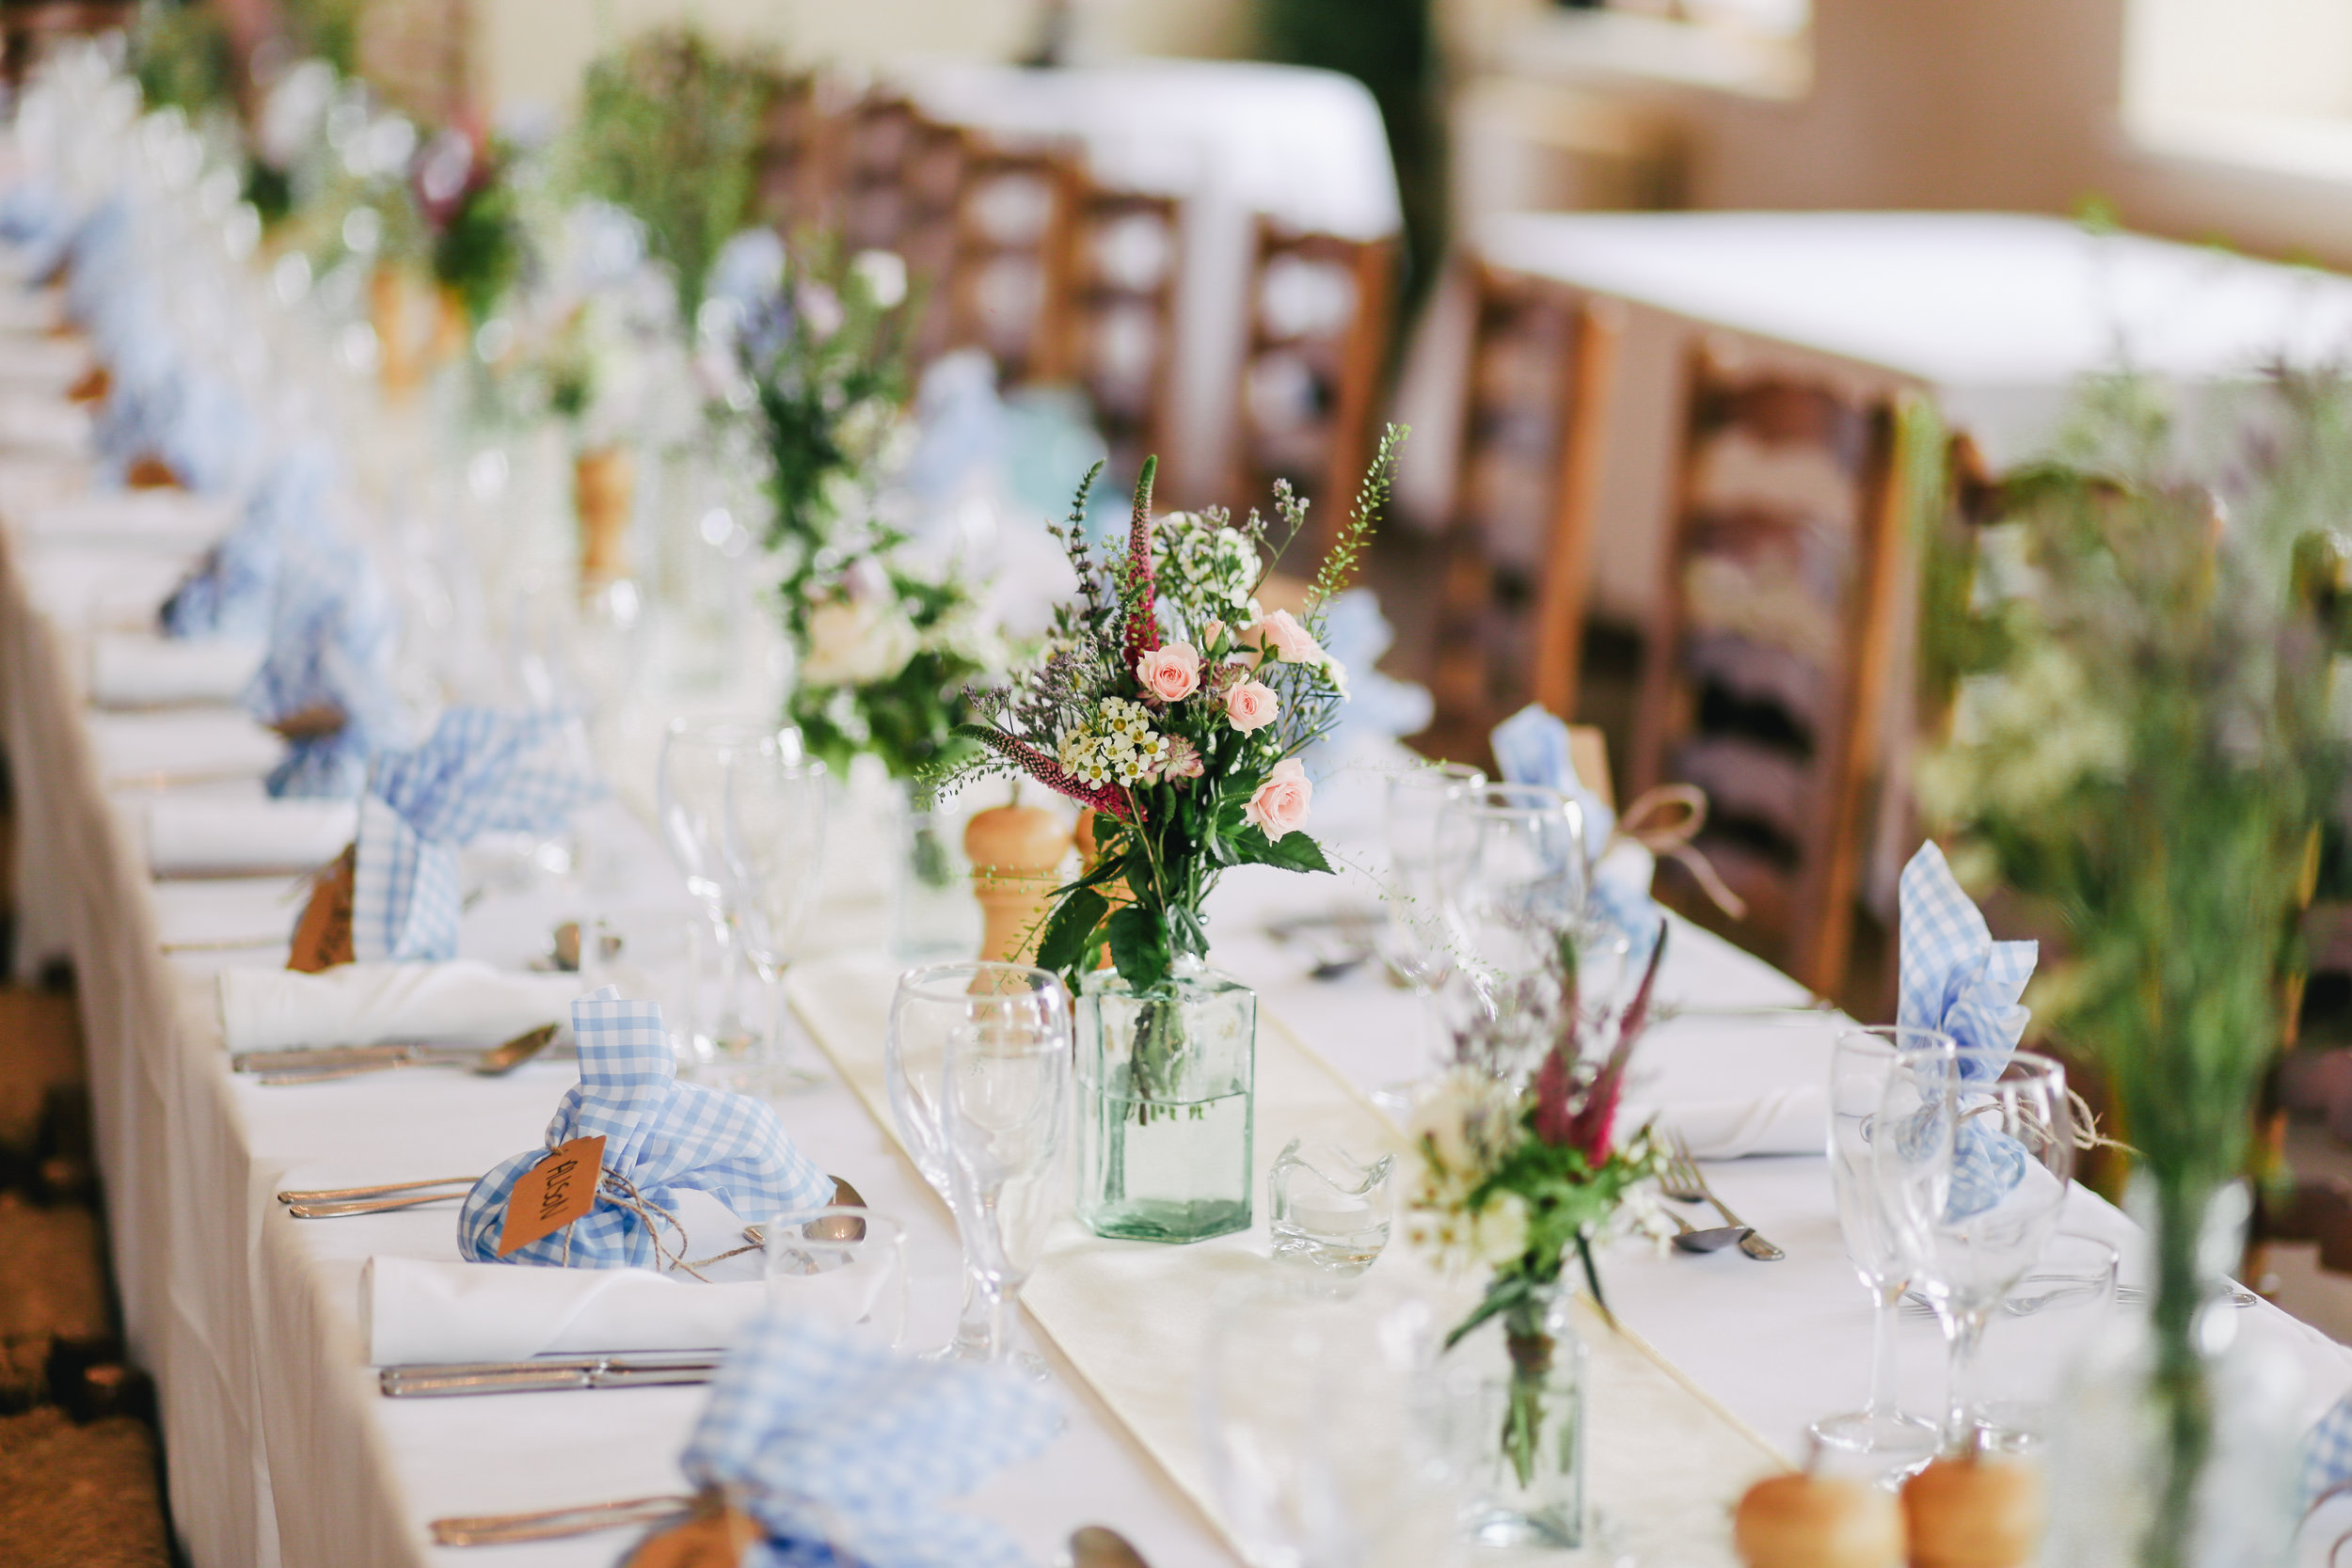 cONTACT US TO HELP WITH YOUR SPECIAL DAY - We have been providing event catering for 13 years and so have a lot of invaluable experience when it comes to planning your special day. When contacting us please try and include the date, the numbers and some information about the venue. If you can give us an idea of budget that will help us to tailor a quote to your expectations.